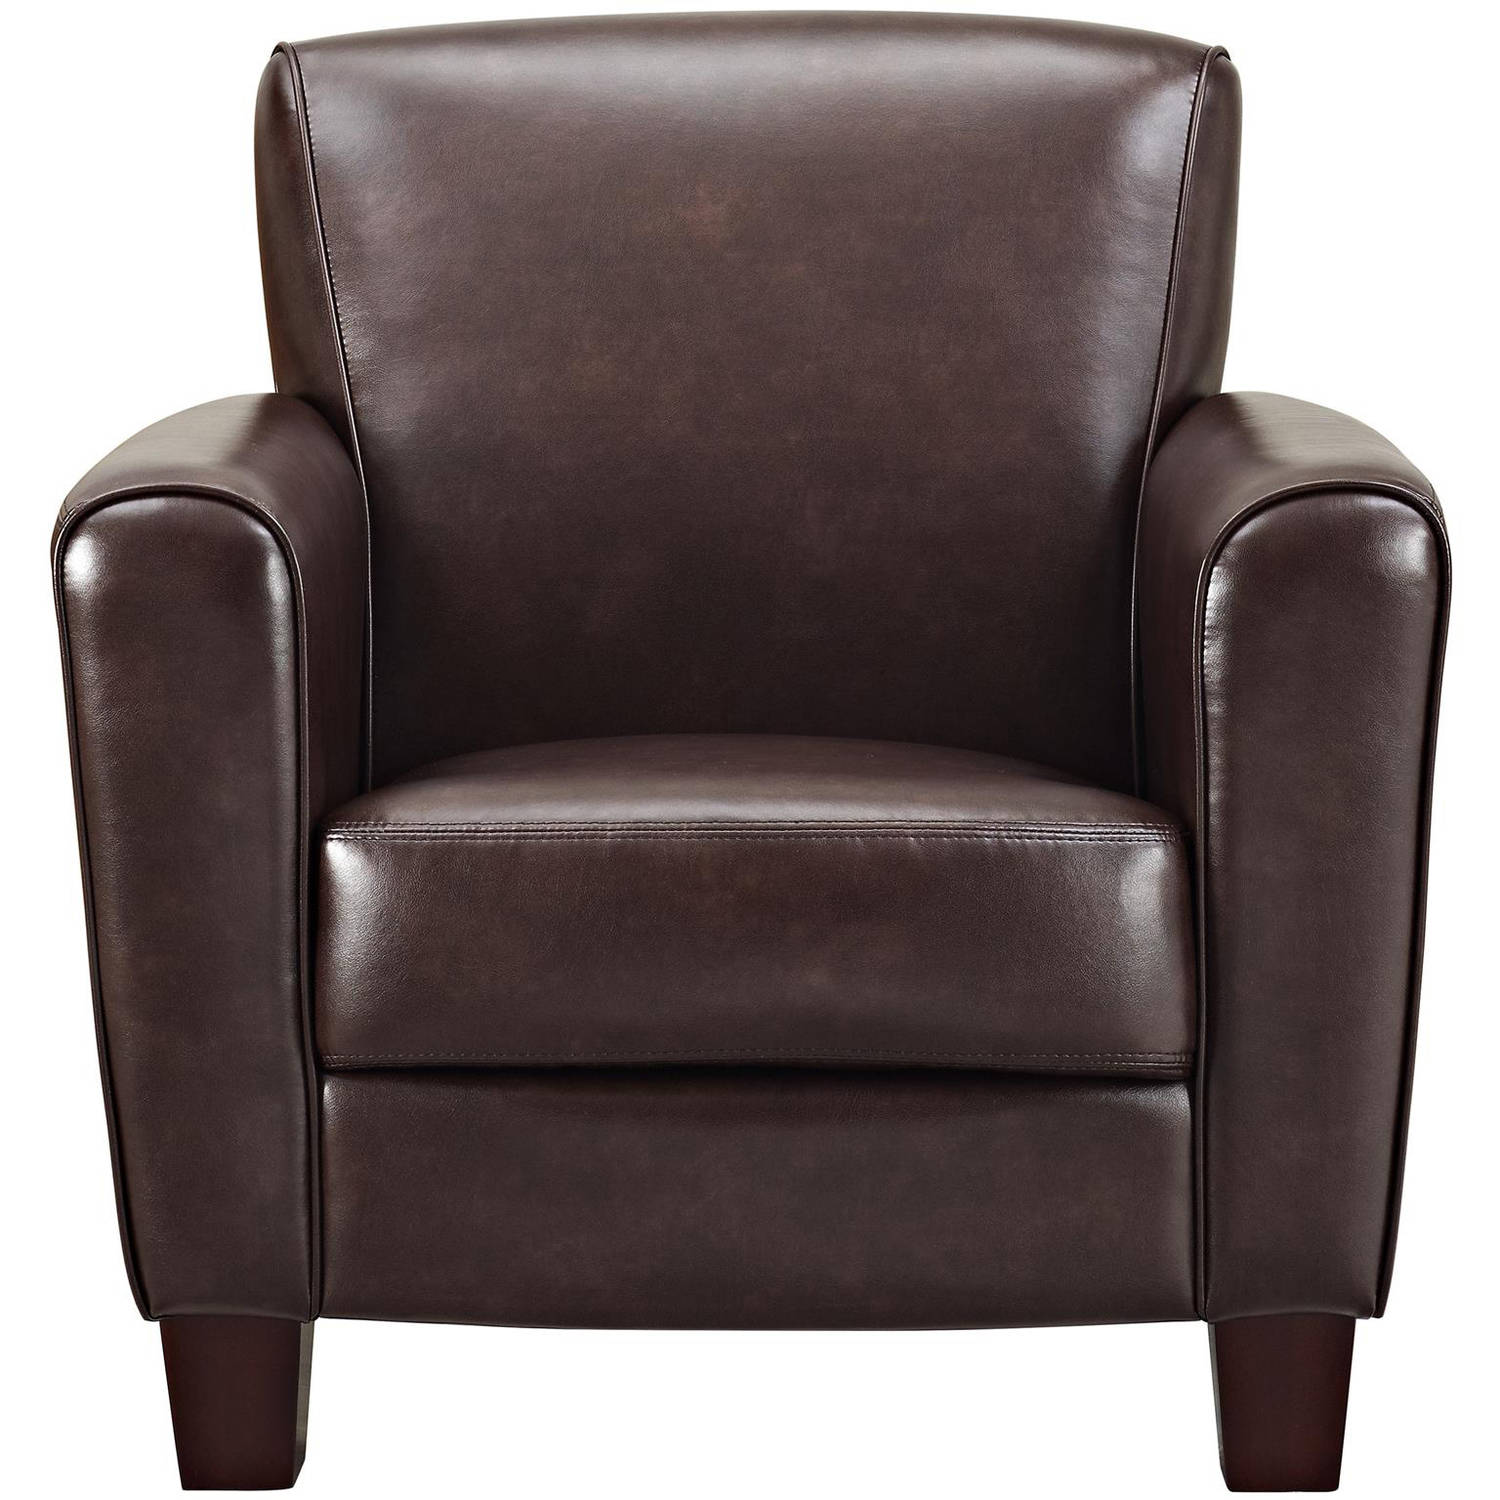 Leather Club Chair Club Chair Brown Leather Casual Contemporary Wide Arm